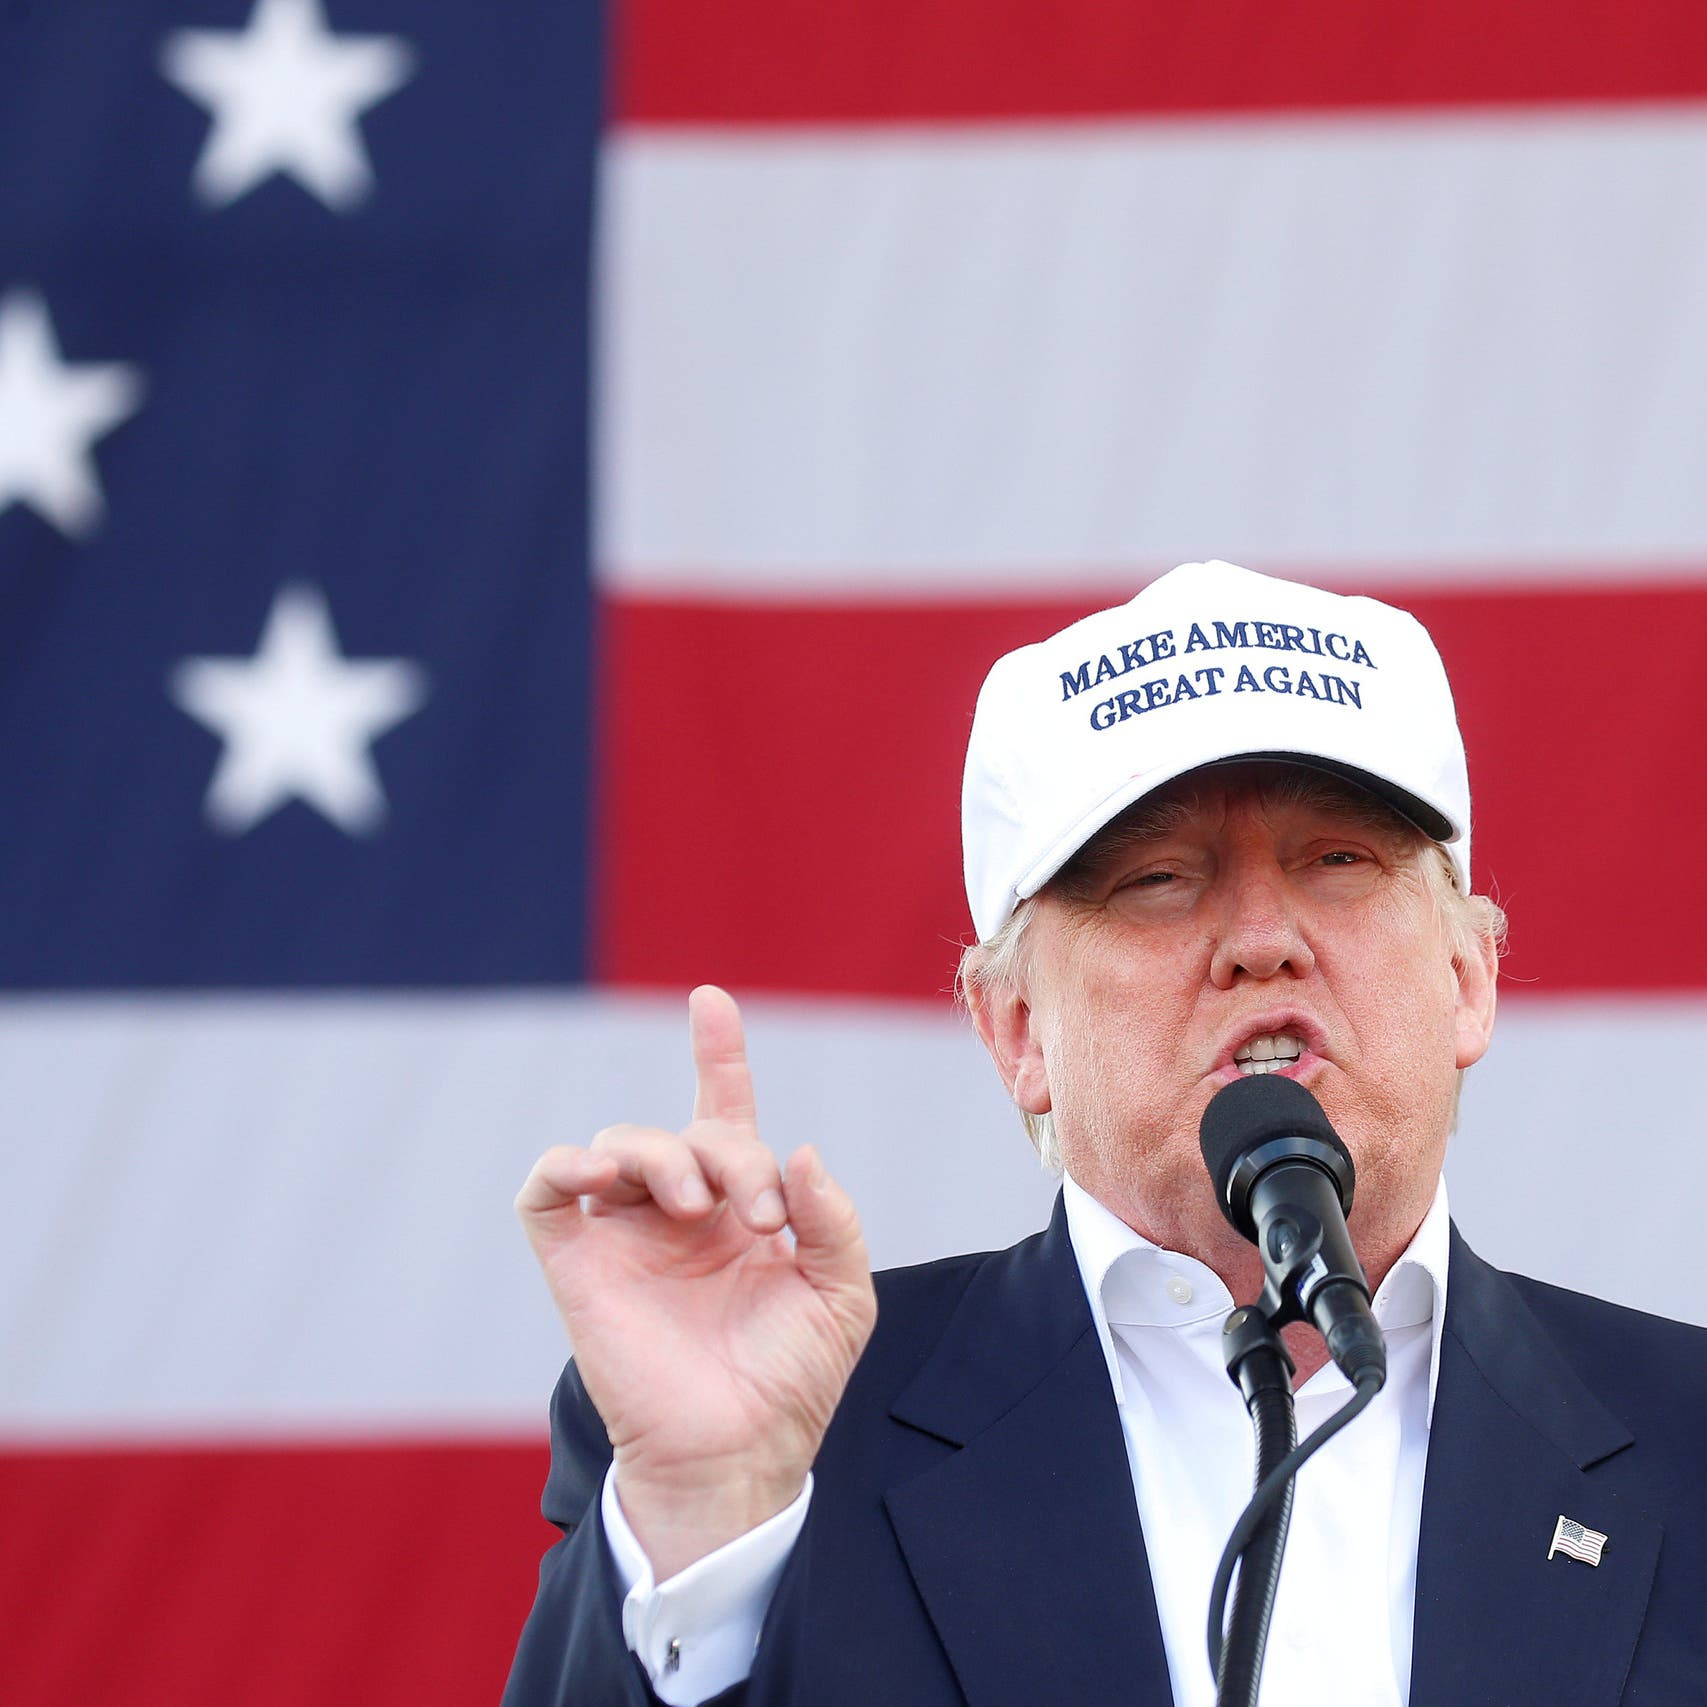 Trump's grip on Republicans sparks fears about democratic process